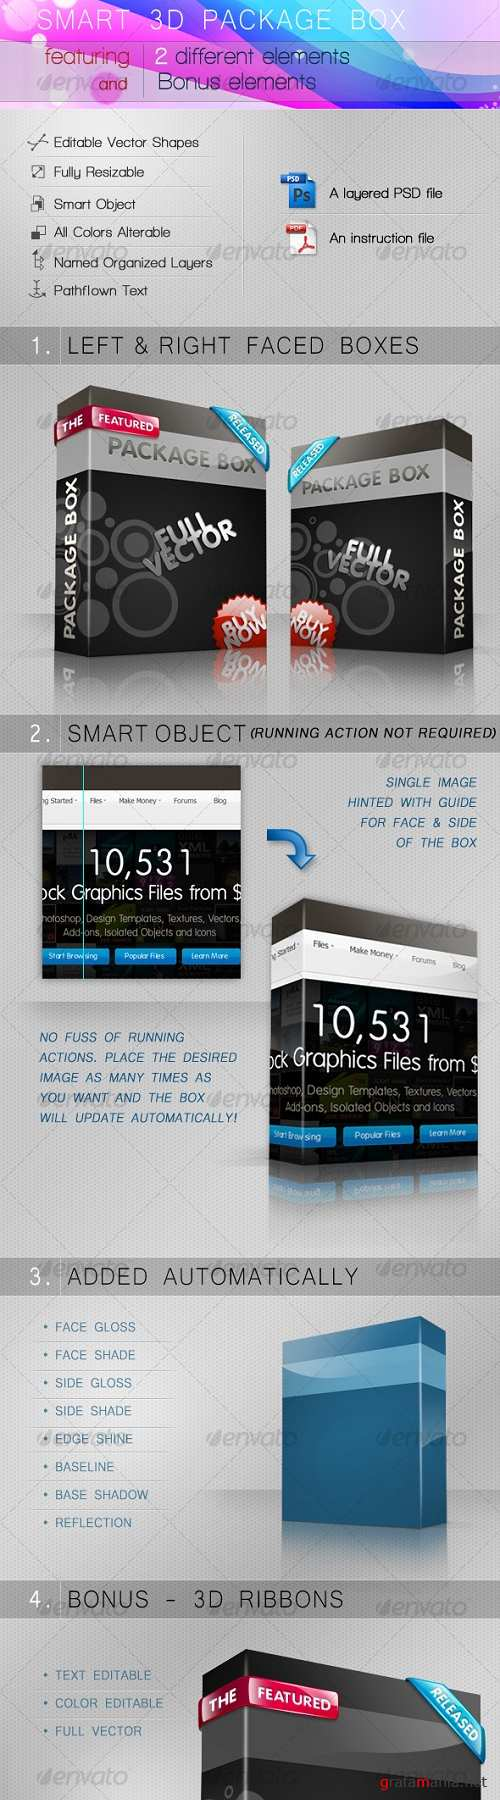 Smart 3D Package Box 92367